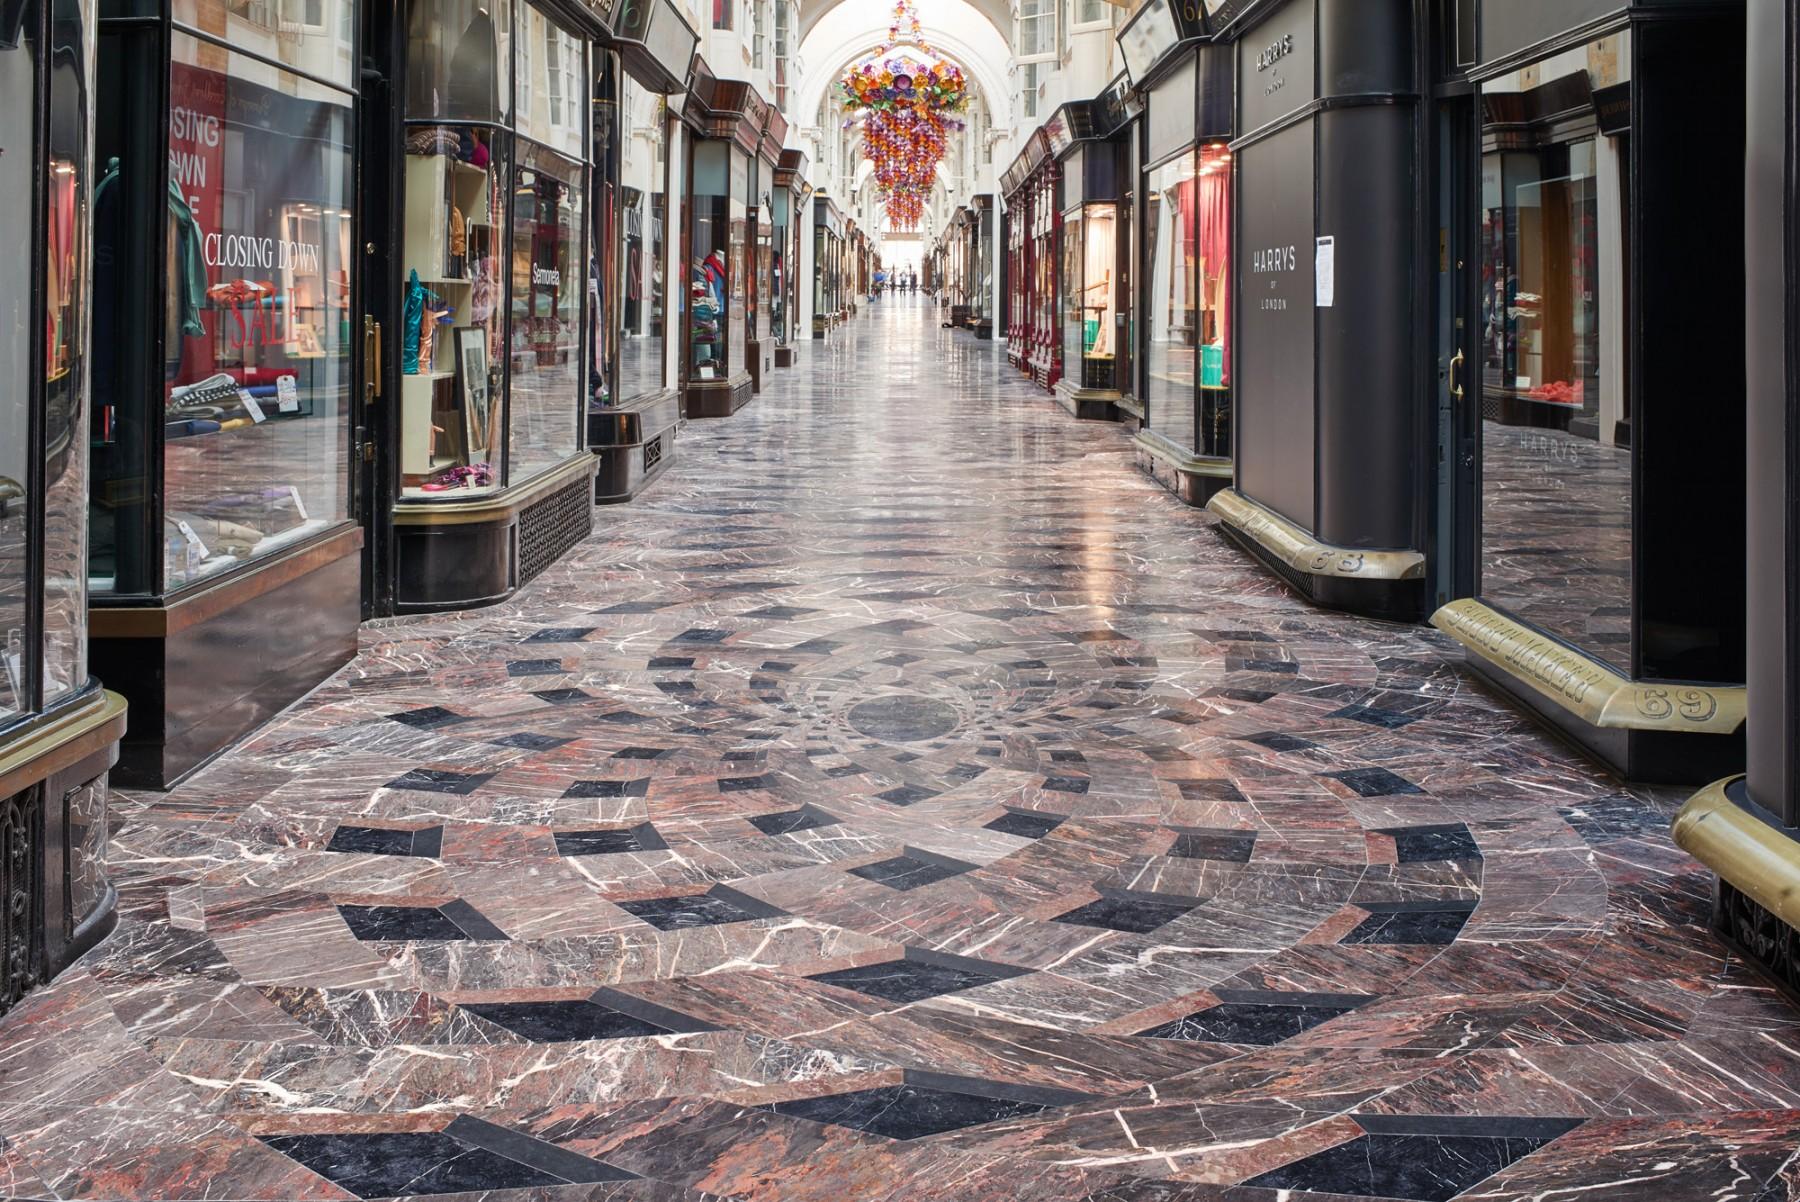 Burlington-Arcade-Piccadilly-London-Royal-Academy Jamie-Fobert-Architects- British-stone-floor-marble-mosaic-interior